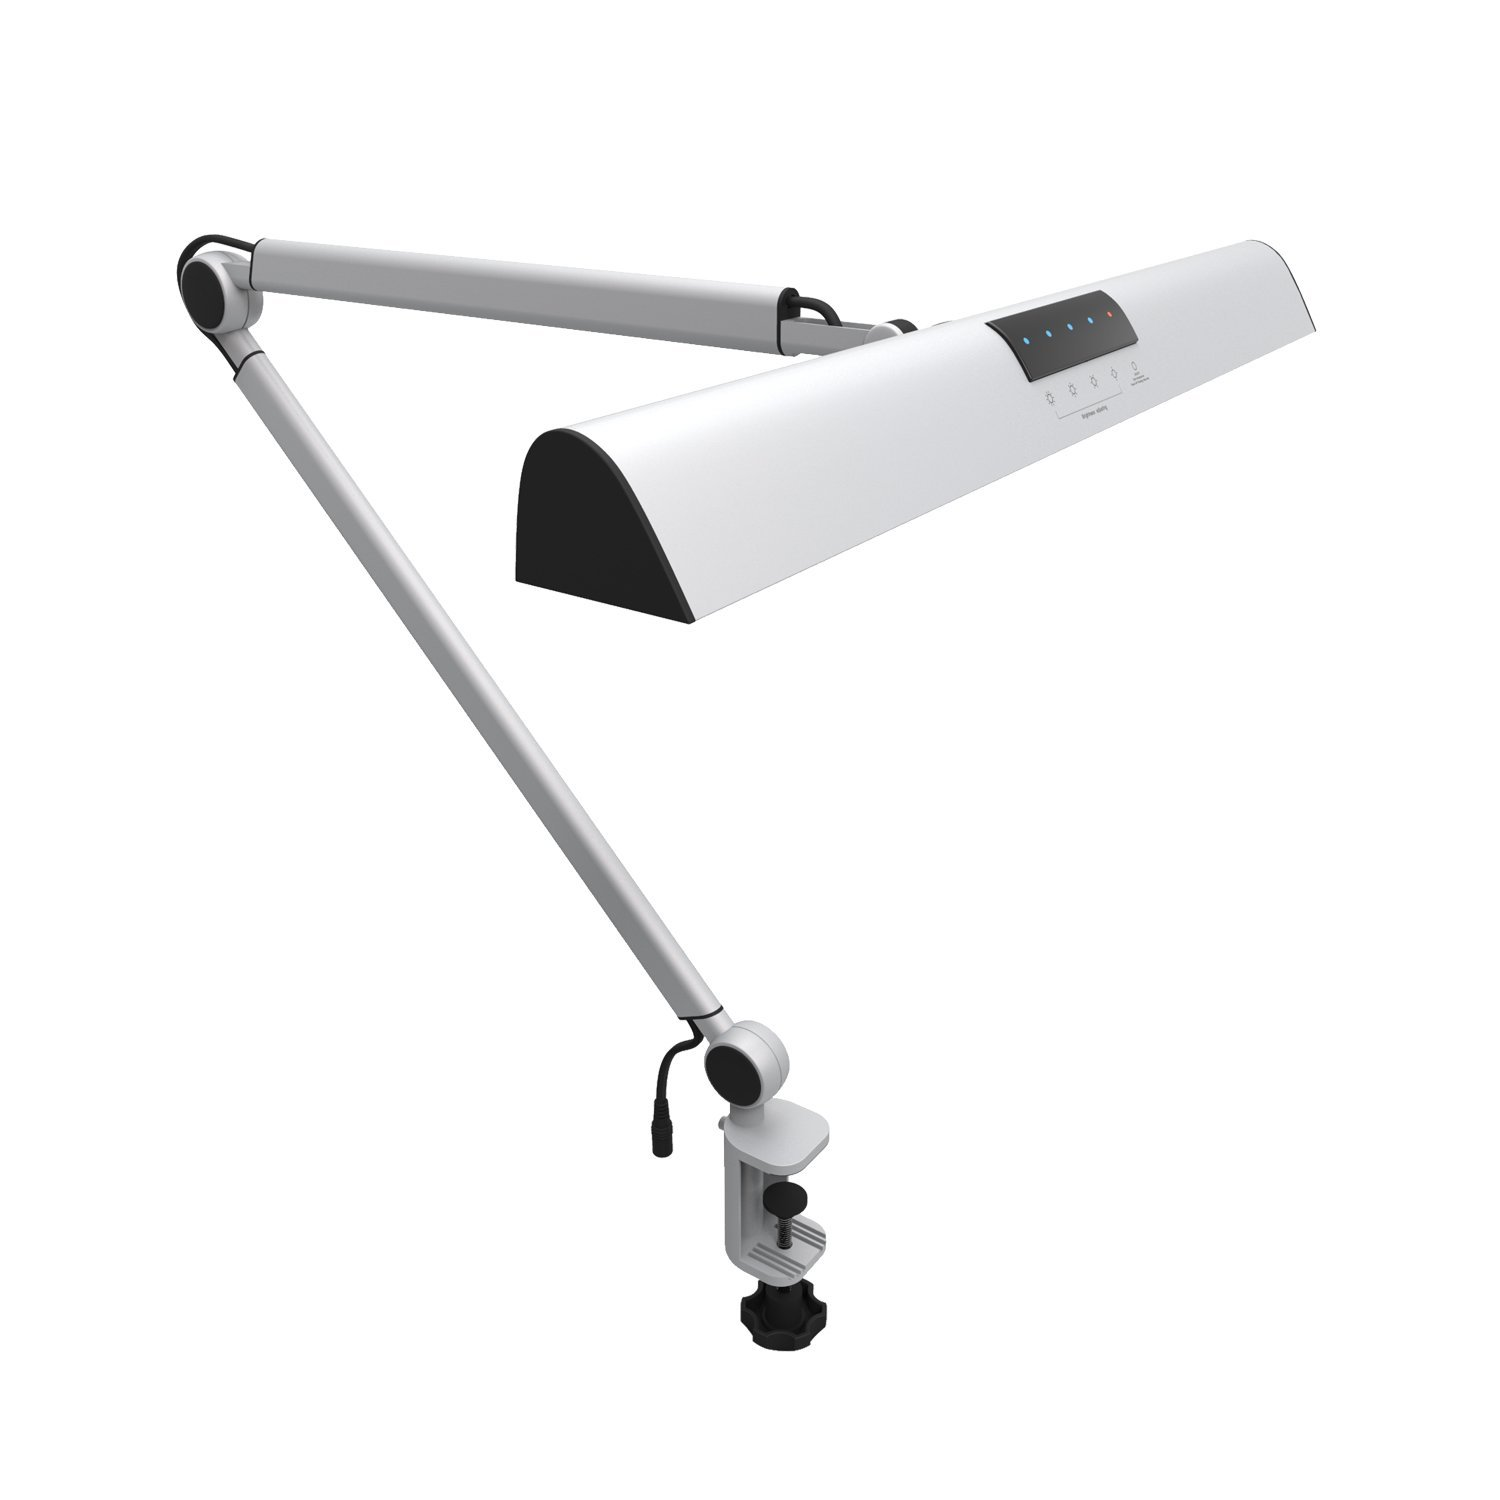 A509 LED Swing Arm Architect Desk Lamp Clamp Touch Table Lamp for Reading Working Silver 2